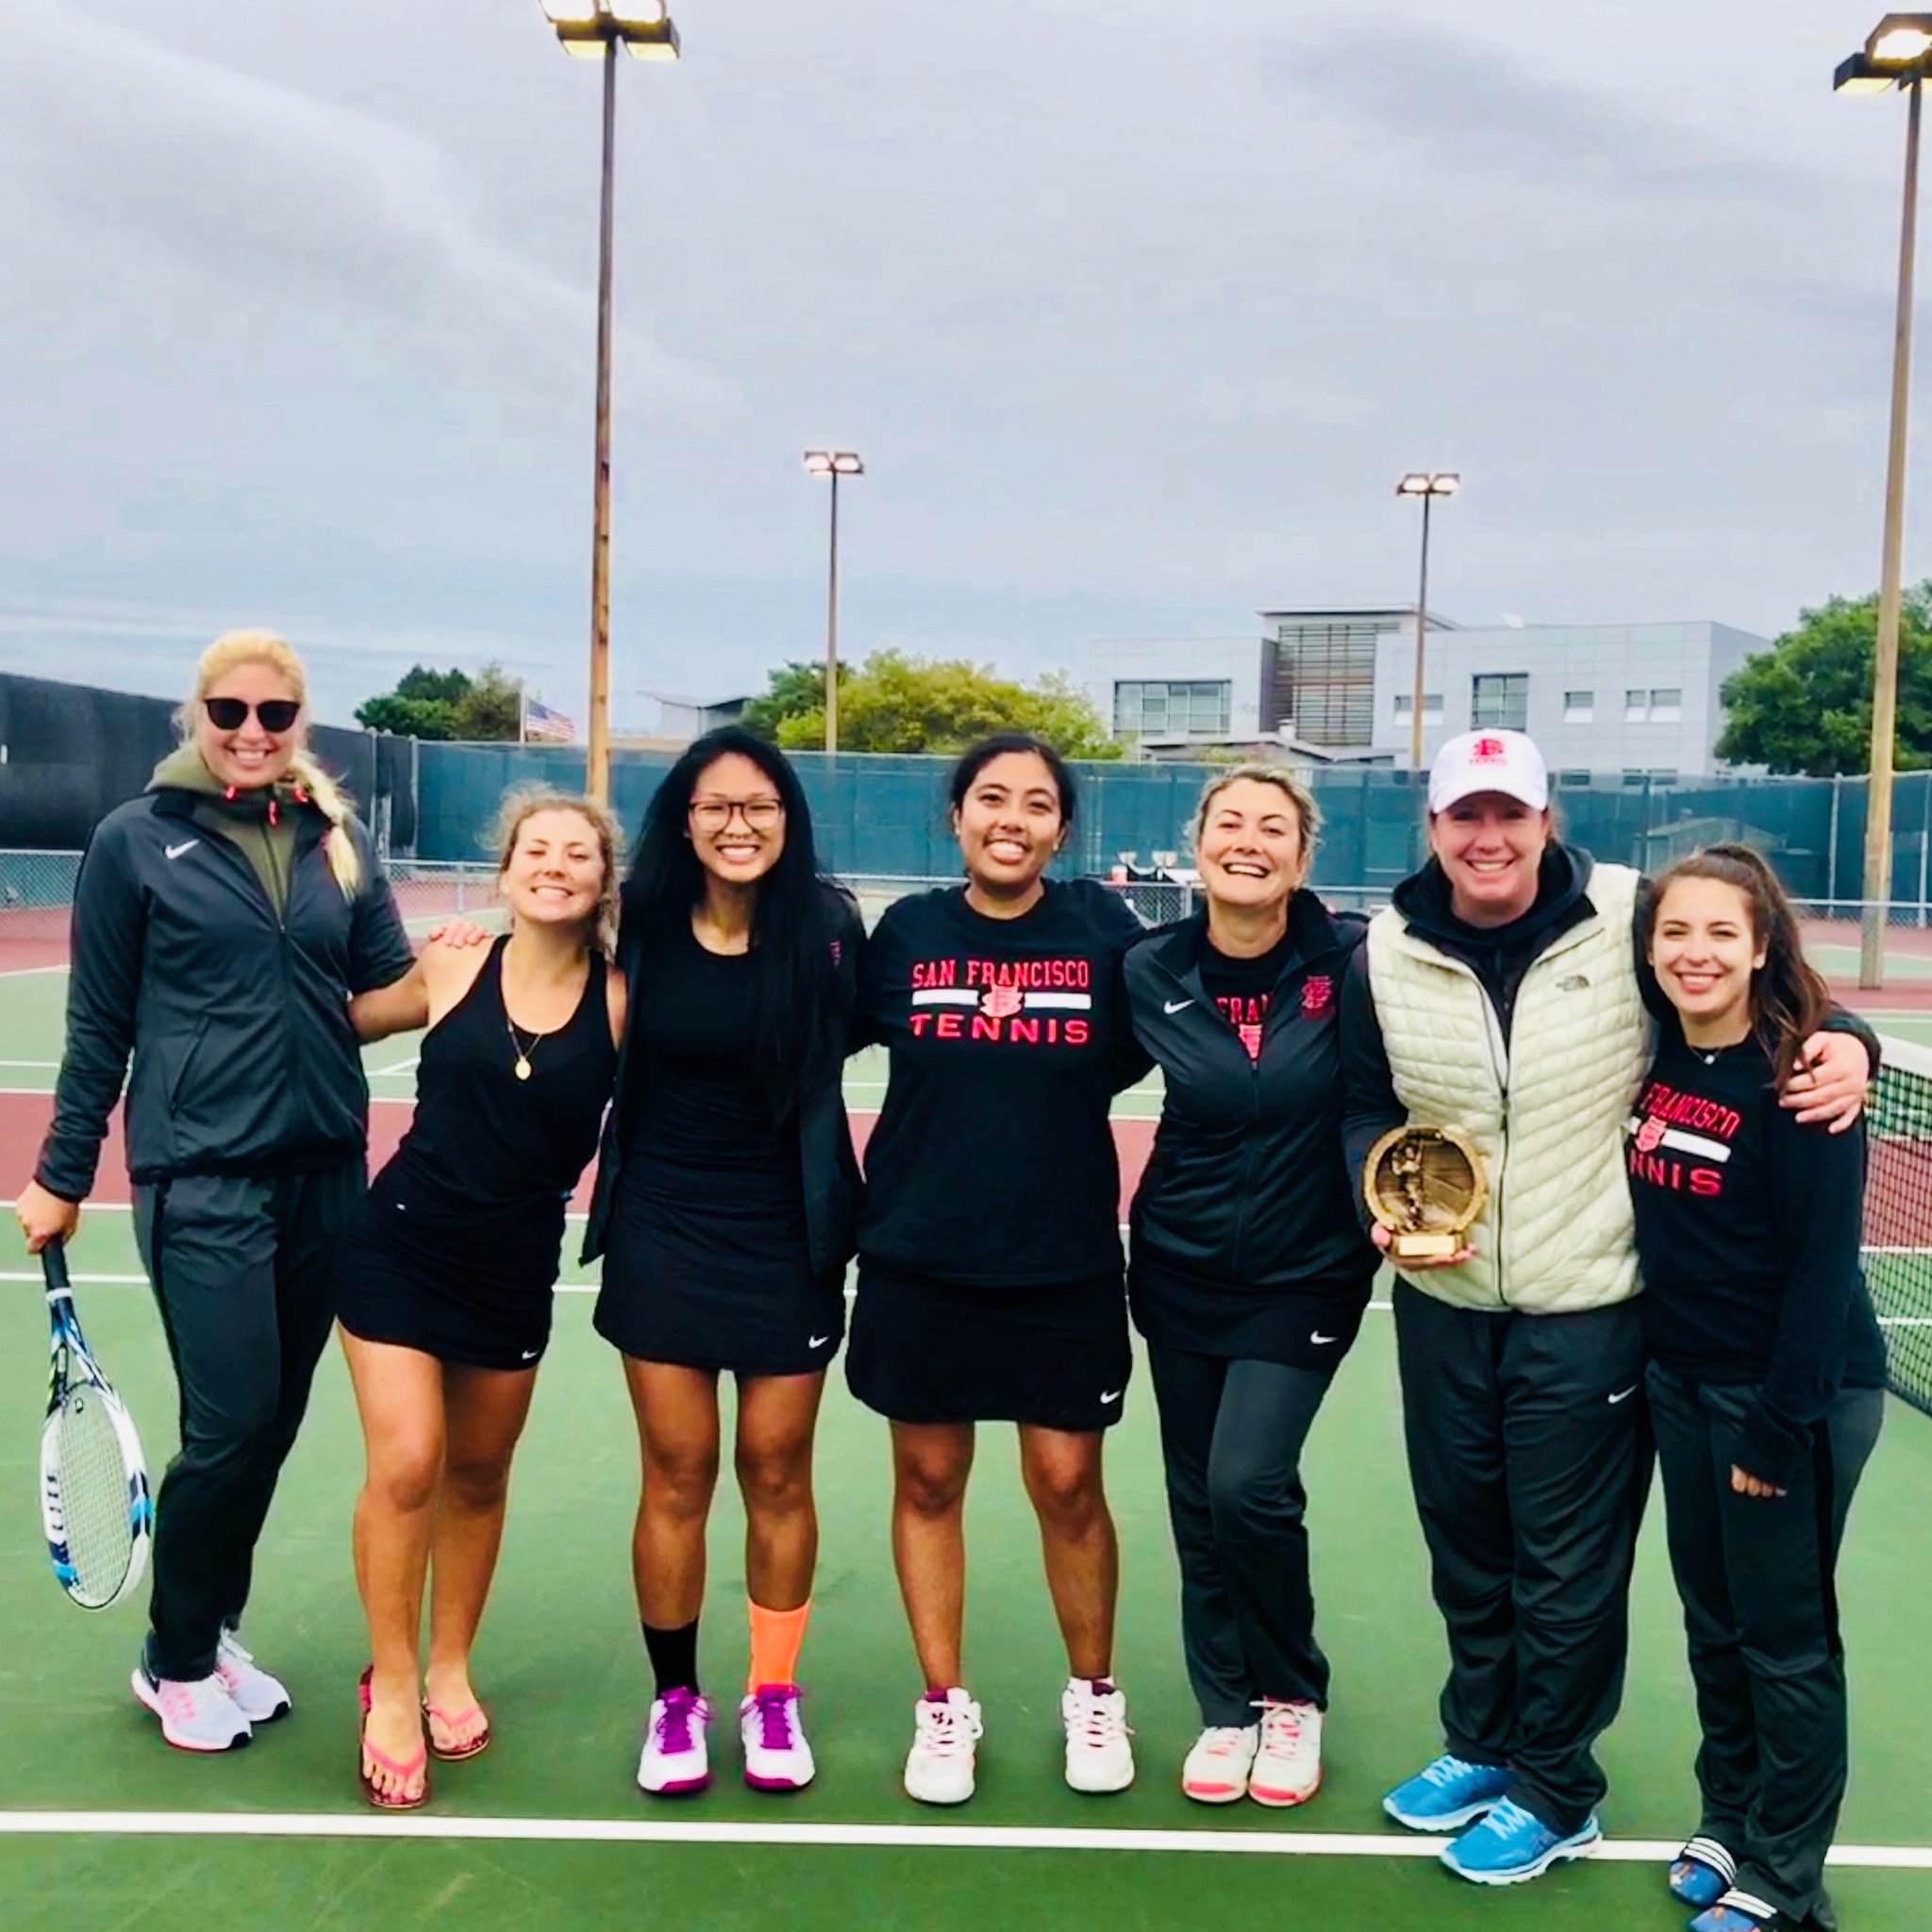 (L-R) Caroline Olander, Claudia Houdre, Yvonne Ng, Abigail Campos, Zee Aynaci, Coach Hickey, Aliza Sandberg after advancing to the Nor-Cal Conference Tournament and receiving Conference Co-Coach of the year. Photo courtesy of CCSF Athletics Department.